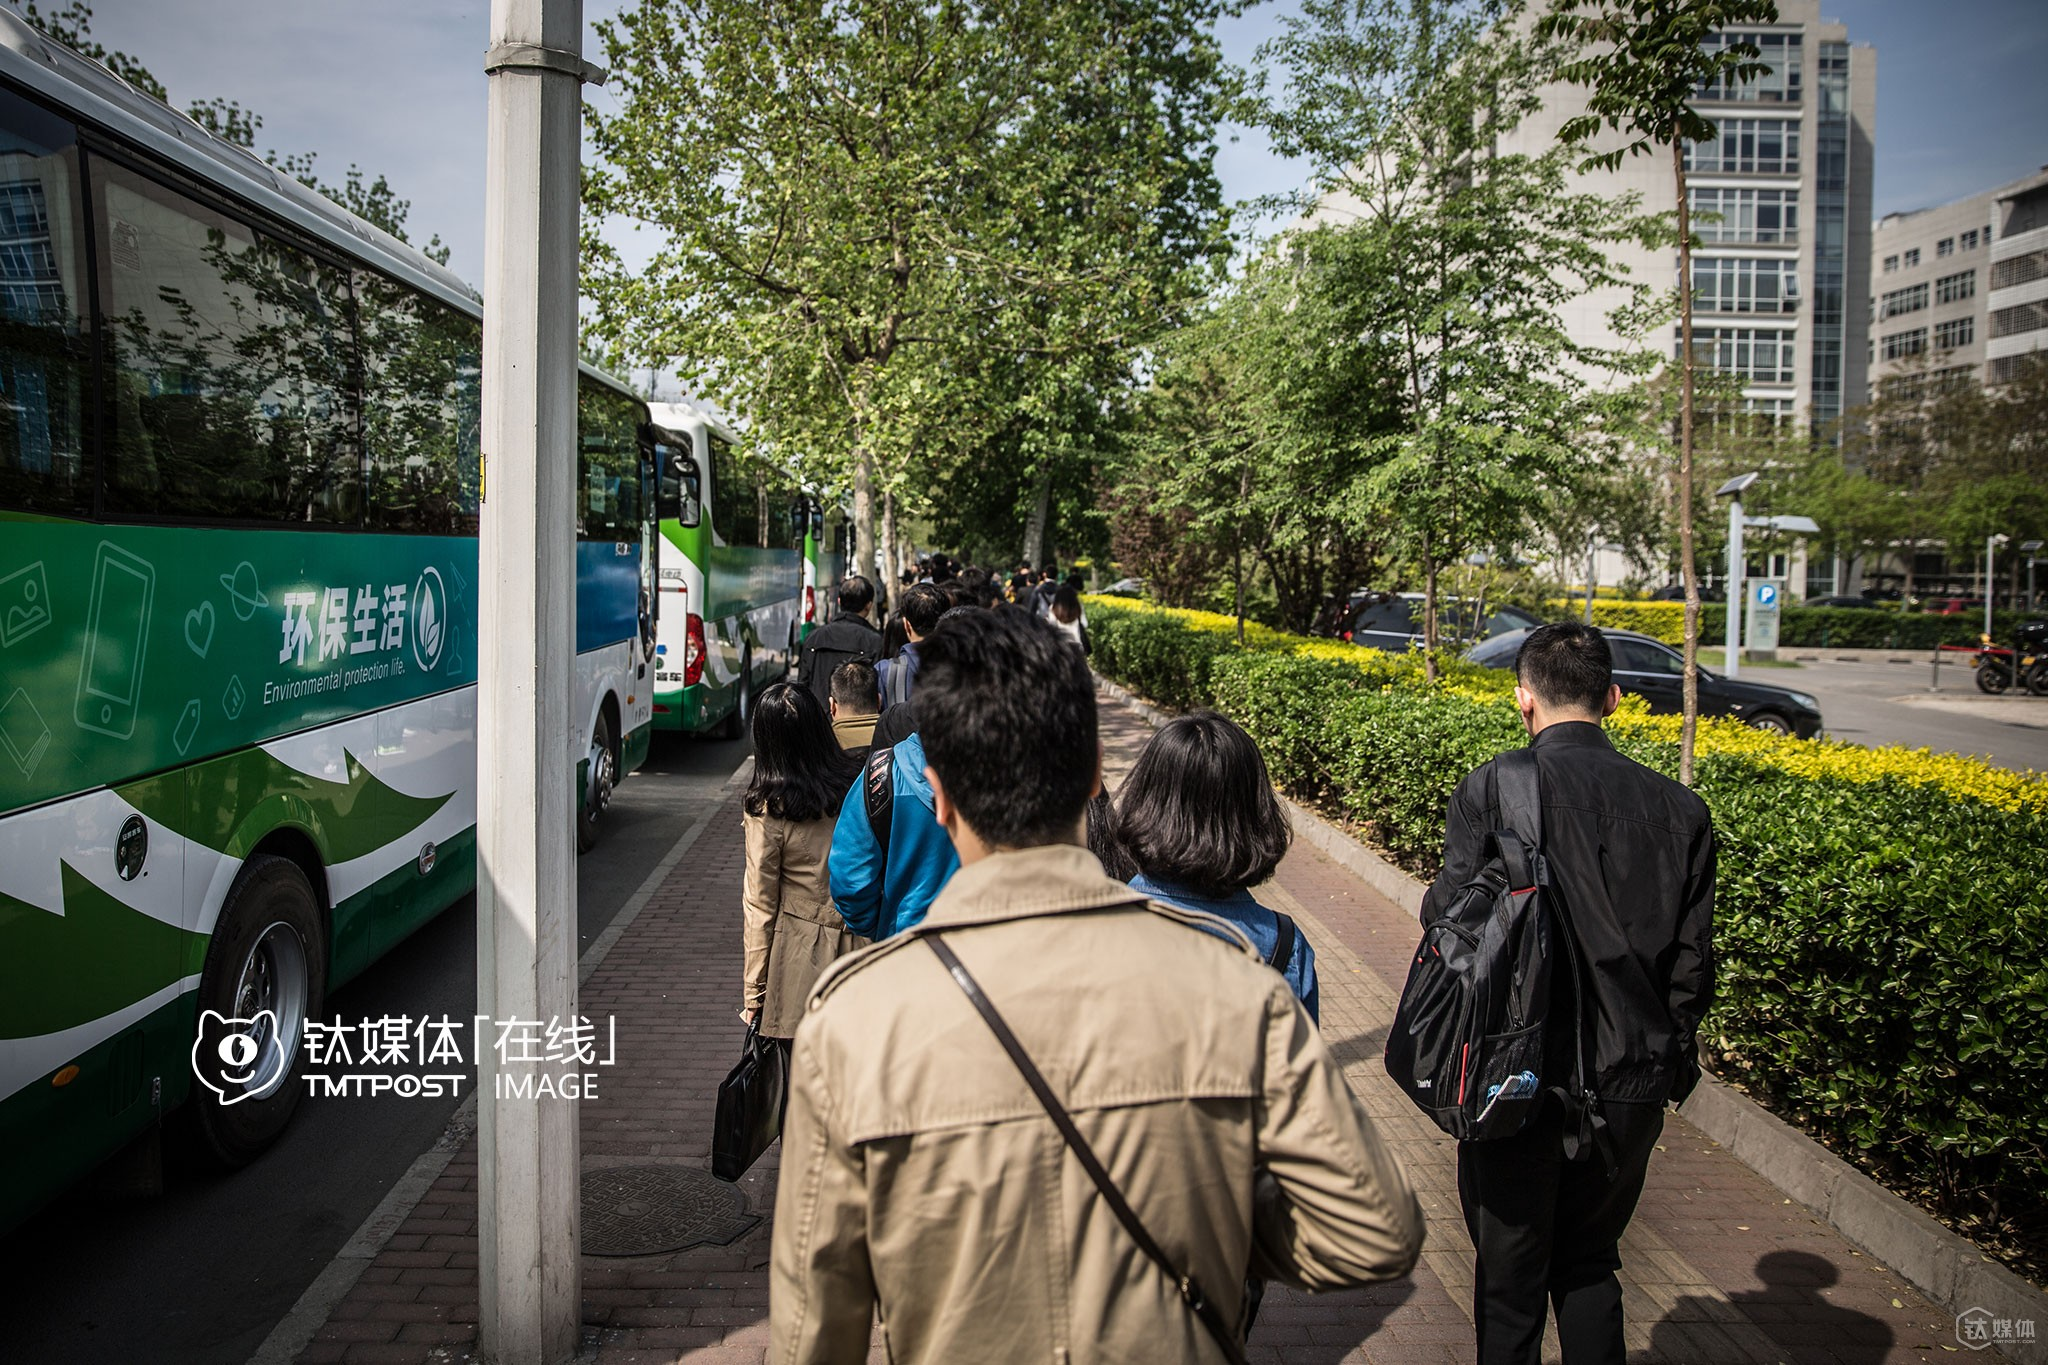 Outside of Baidu Technology Park Building, people were waiting for shuttle buses to other office buildings of Baidu. Many star Internet companies are located around Shangdi area, including Oracles, Didi, Lenovo, Baidu, Xiaomi… Other Internet companies such as NetEase, Tencent and Sina all have plans to move to this area.